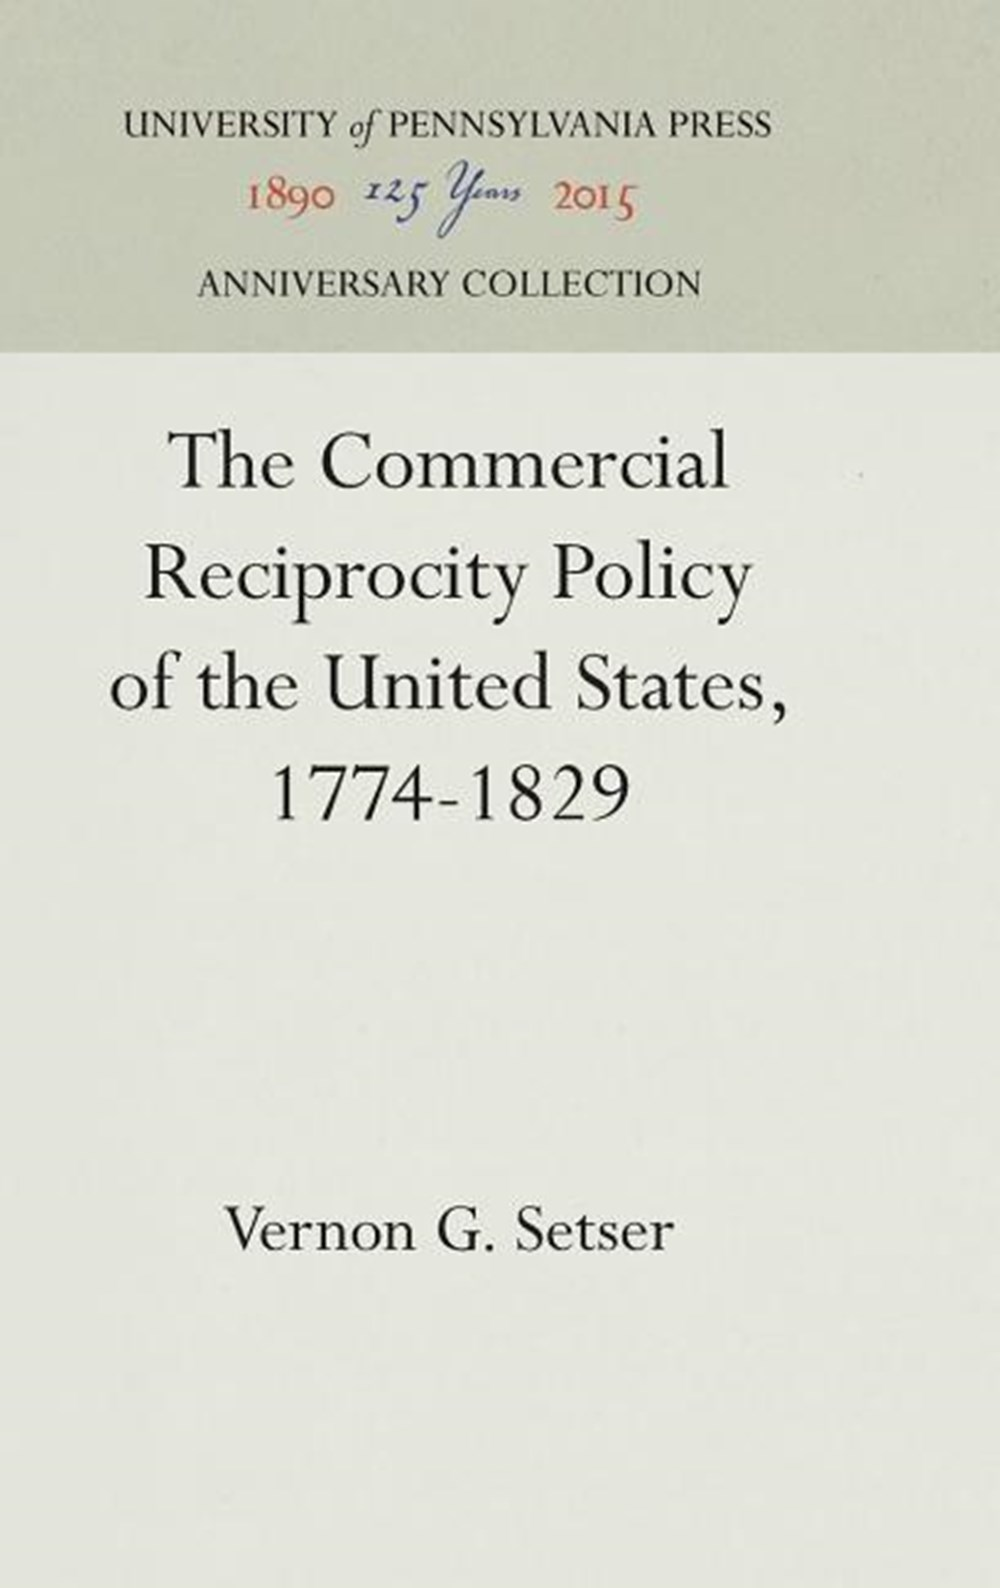 Commercial Reciprocity Policy of the United States, 1774-1829